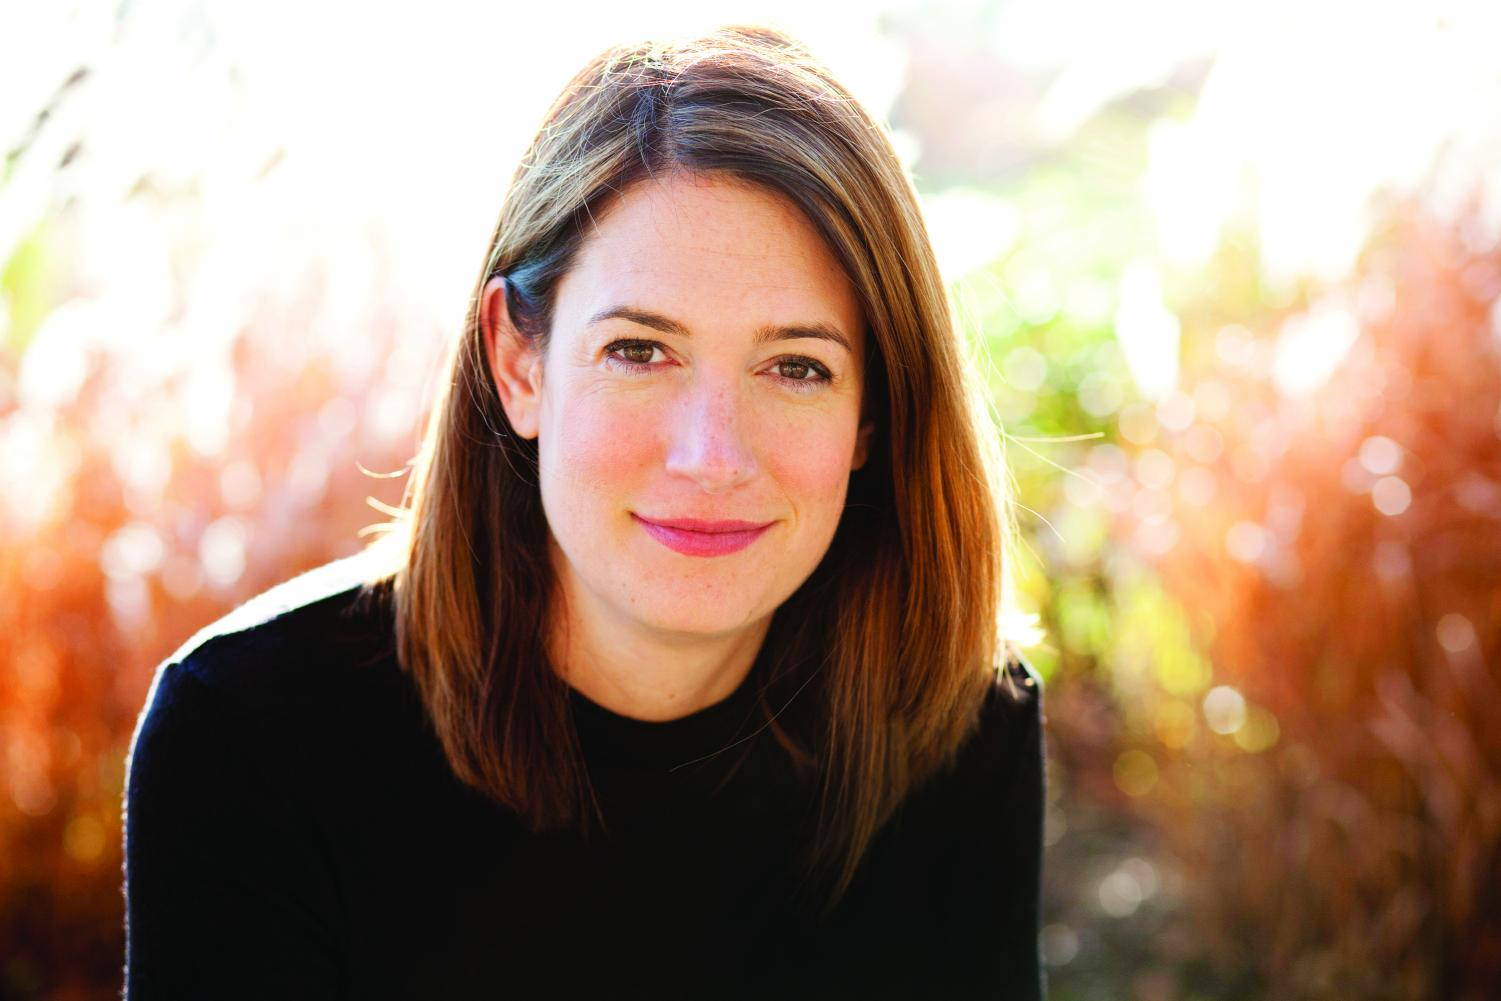 Author Gillian Flynn (MSJ '97). Flynn said it's incredibly important that to show all kinds of women in literature.